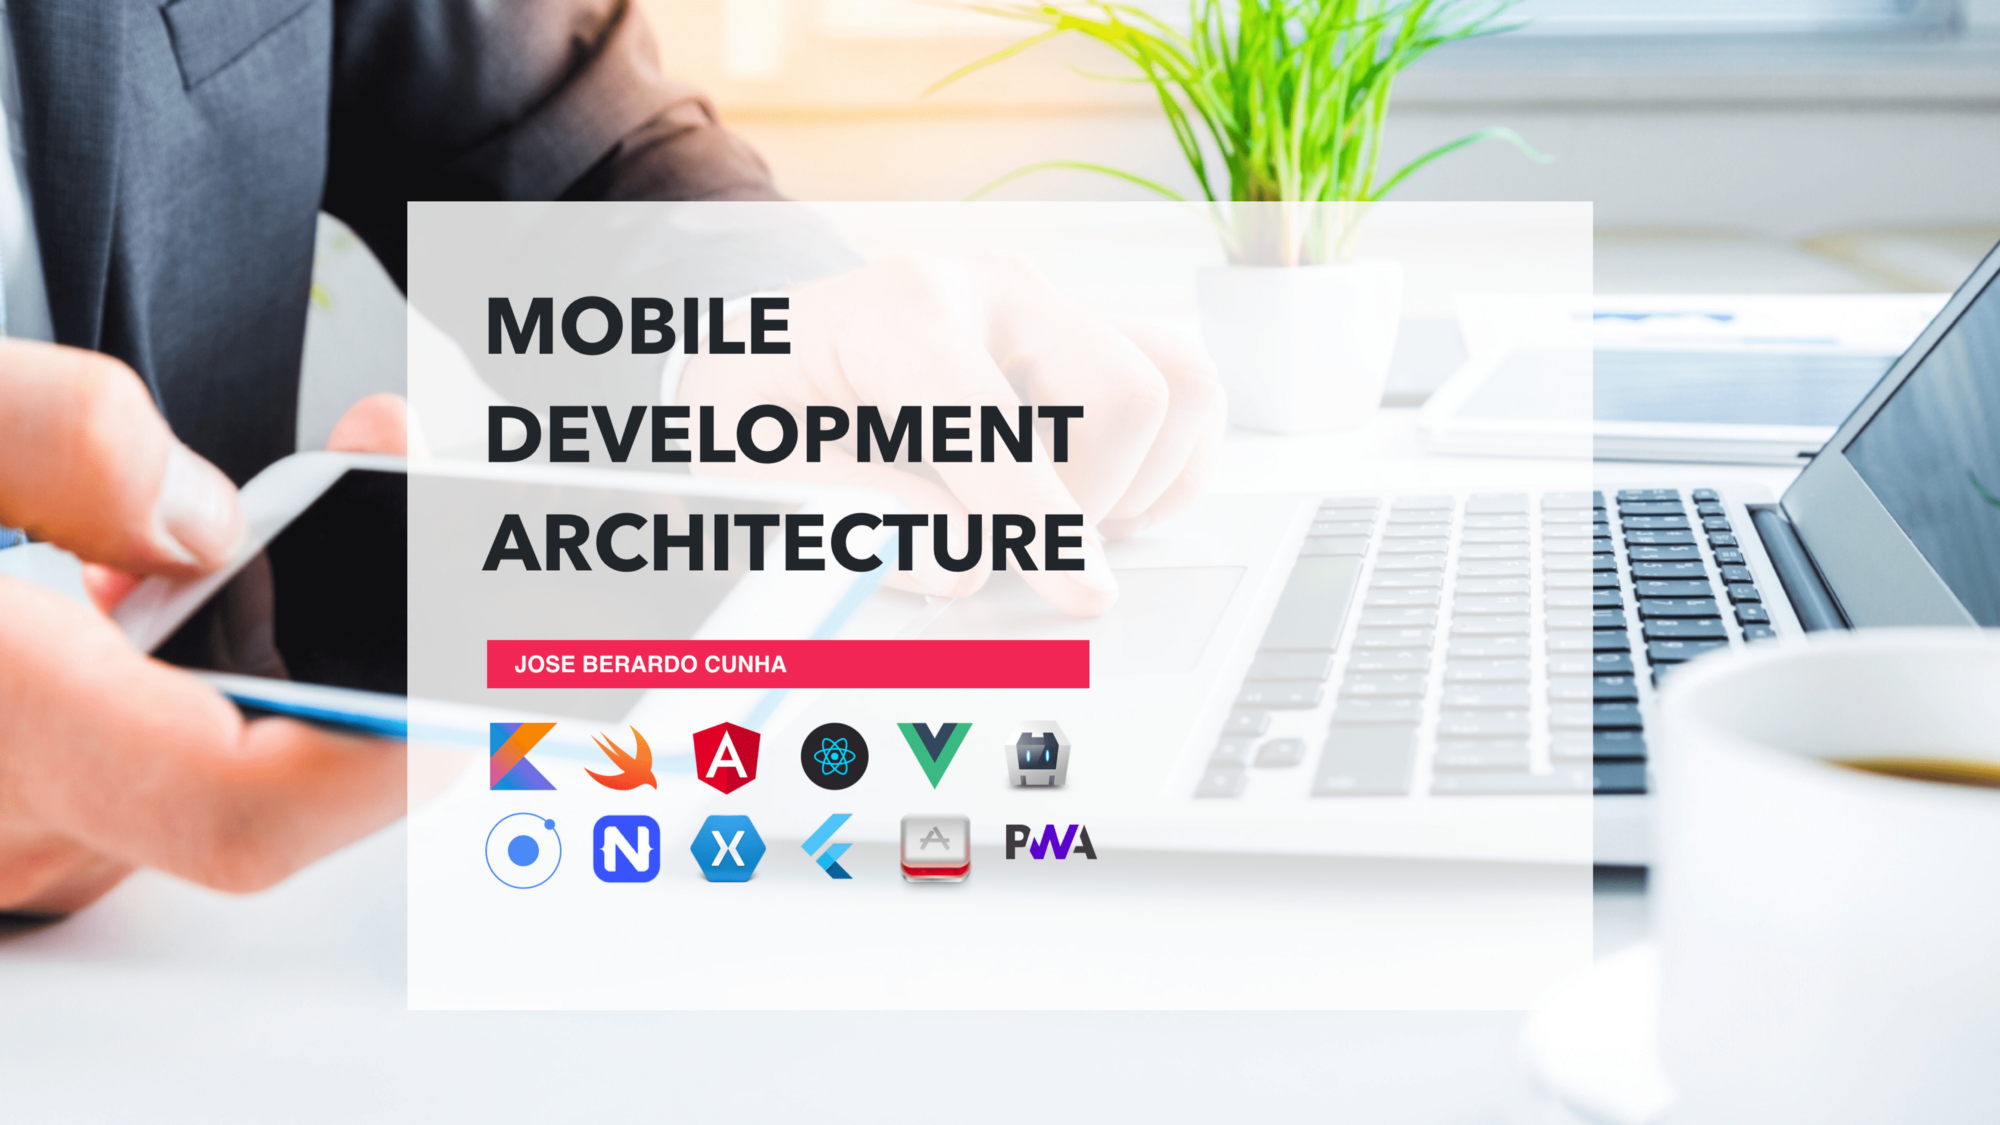 A Deeply Detailed But Never Definitive Guide To Mobile Development Animal M Stak 21 Serving Architecture